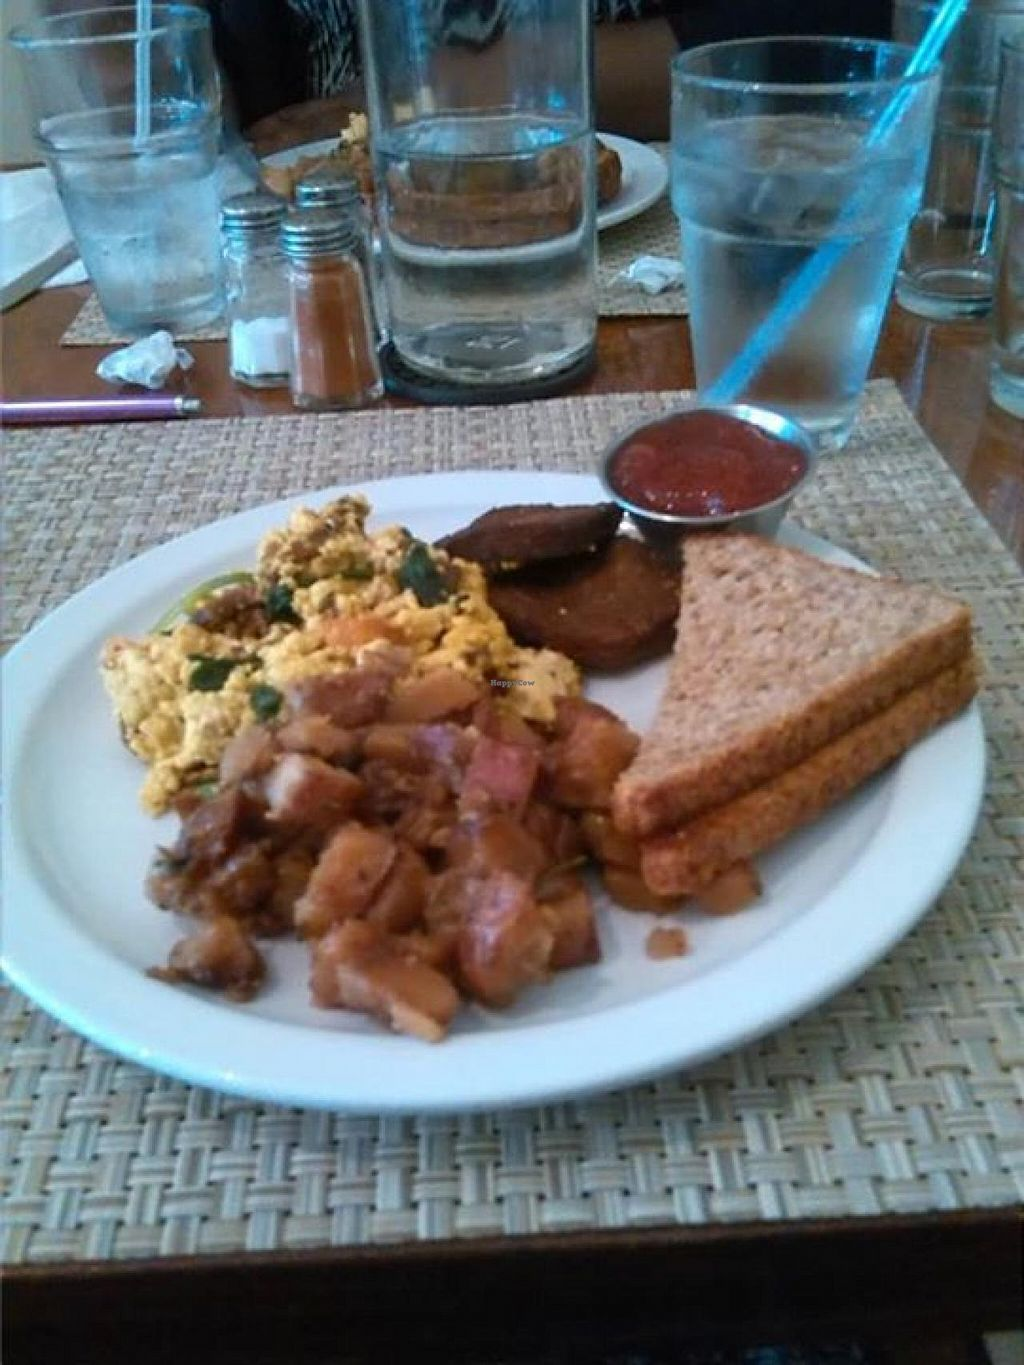 """Photo of Detroit Vegan Soul - East  by <a href=""""/members/profile/KimberlyAMunson"""">KimberlyAMunson</a> <br/>The Home-style Breakfast is one of the Sunday Brunch menu options. This was delicious <br/> May 27, 2015  - <a href='/contact/abuse/image/32342/103632'>Report</a>"""